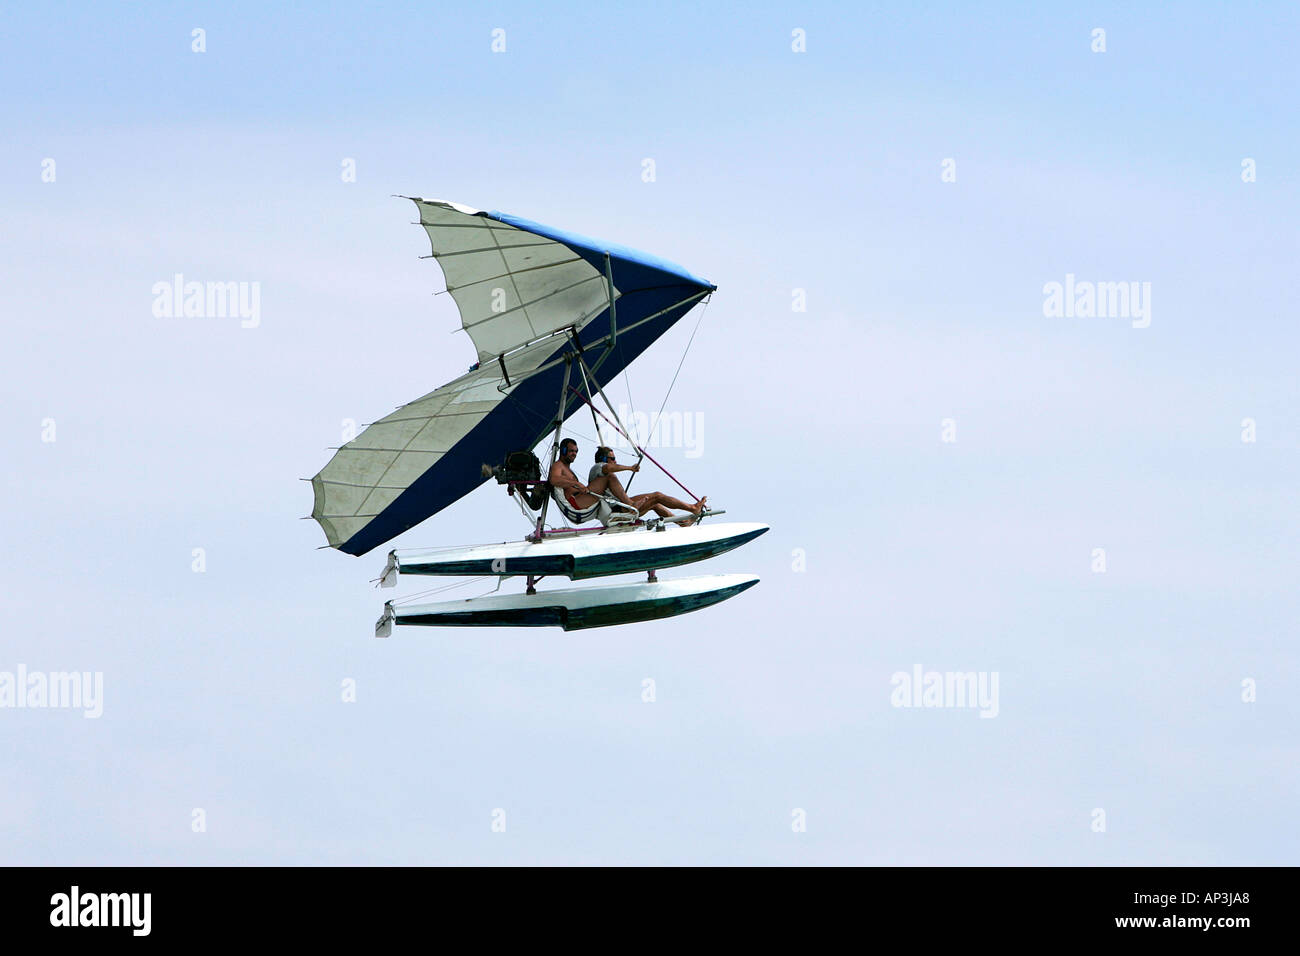 hang glider high wings powered beach sport danger remote lonely